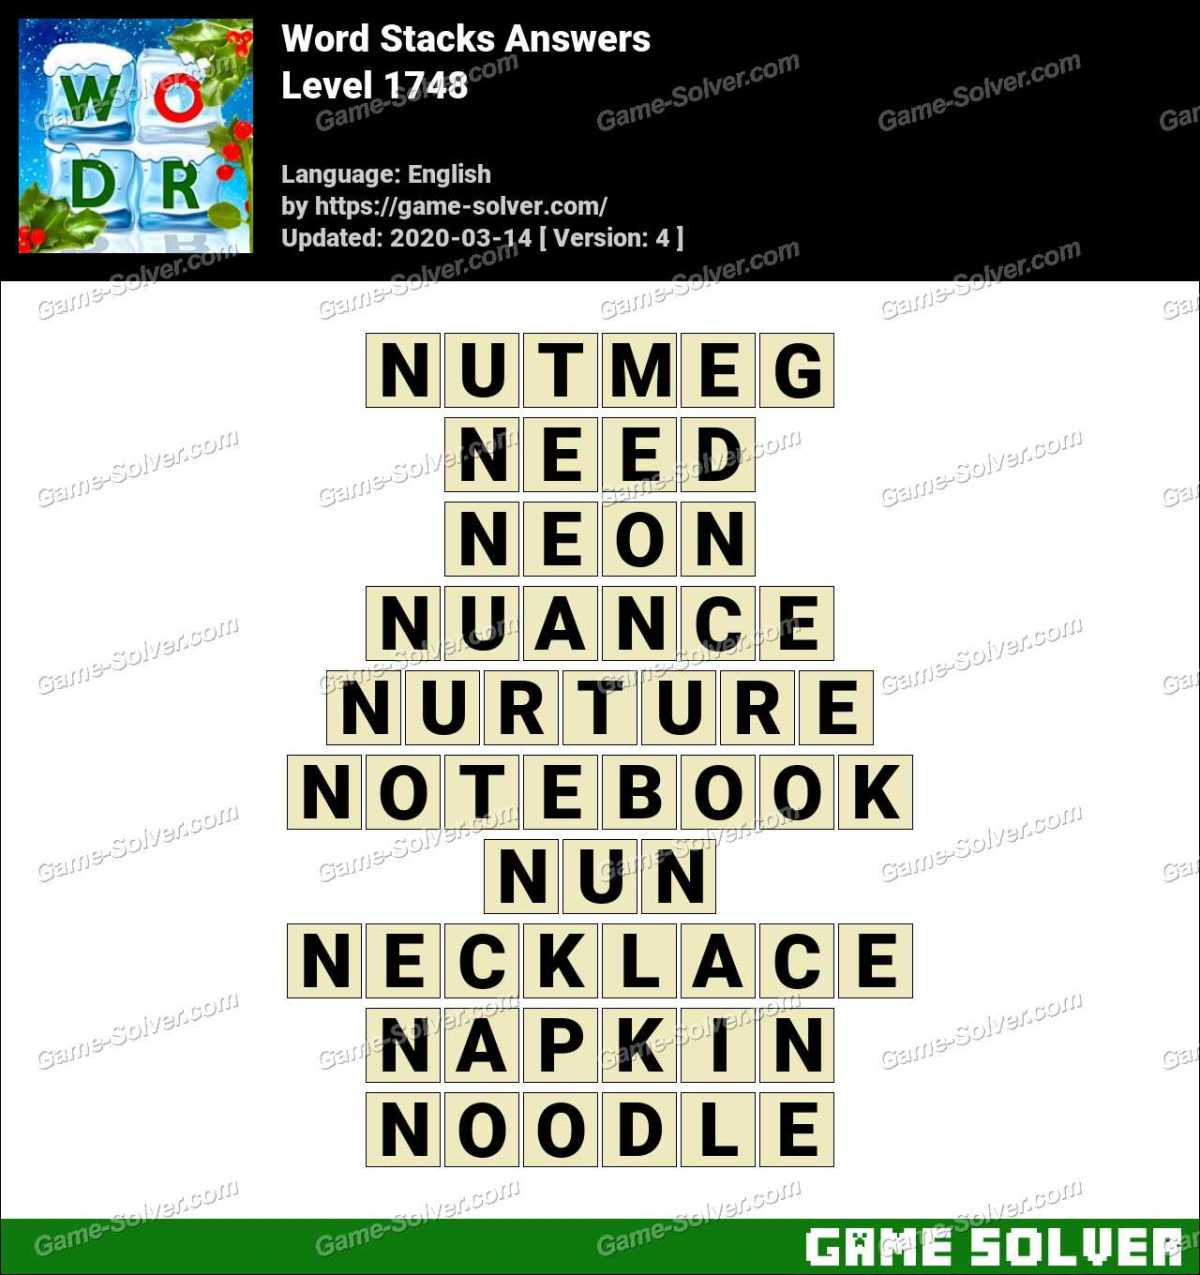 Word Stacks Level 1748 Answers